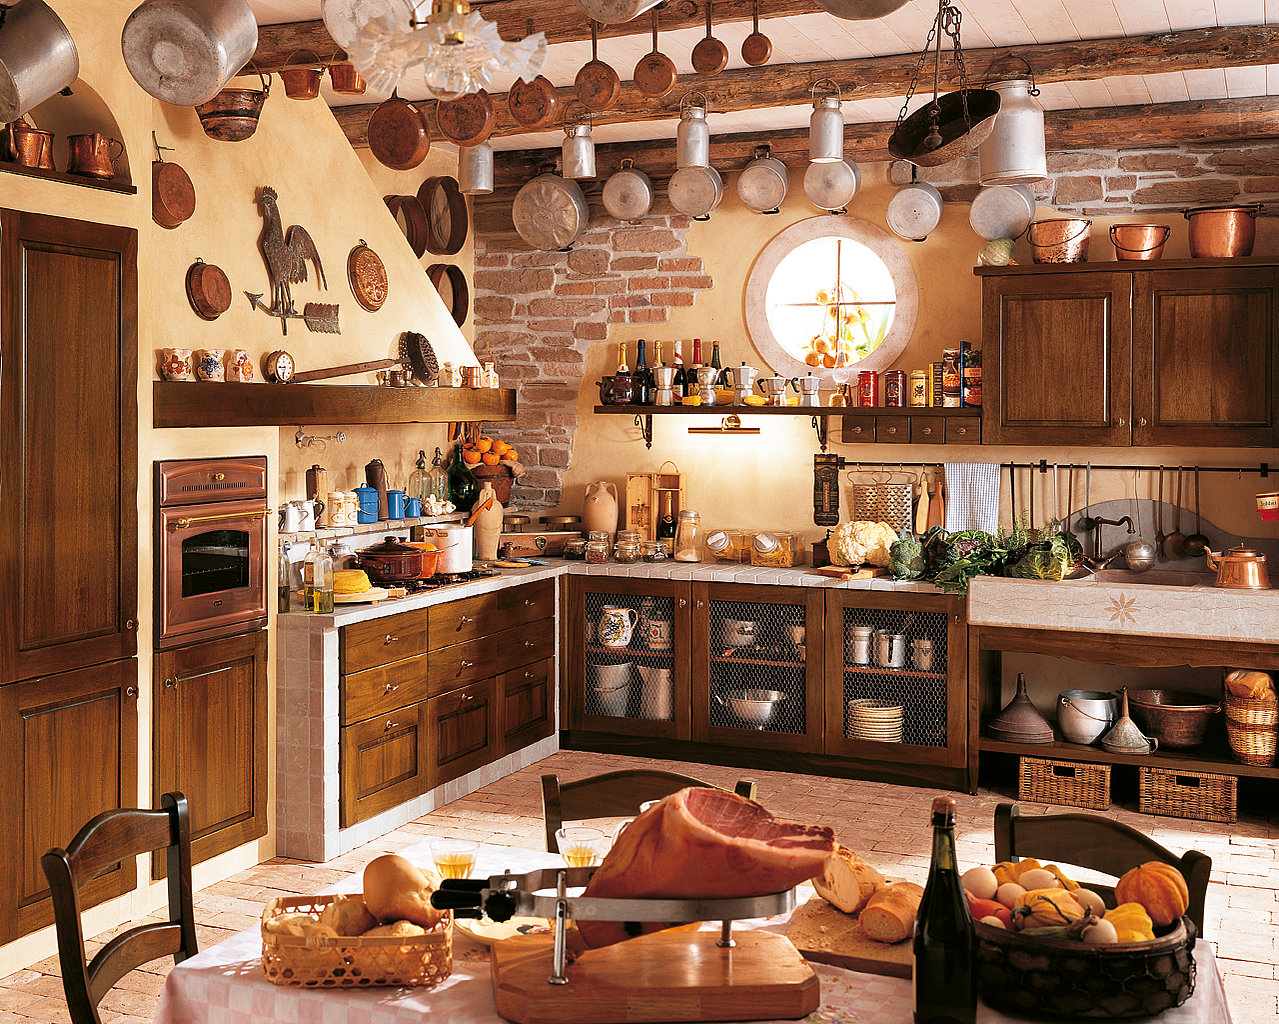 Image of: rustic kitchen decor ideas